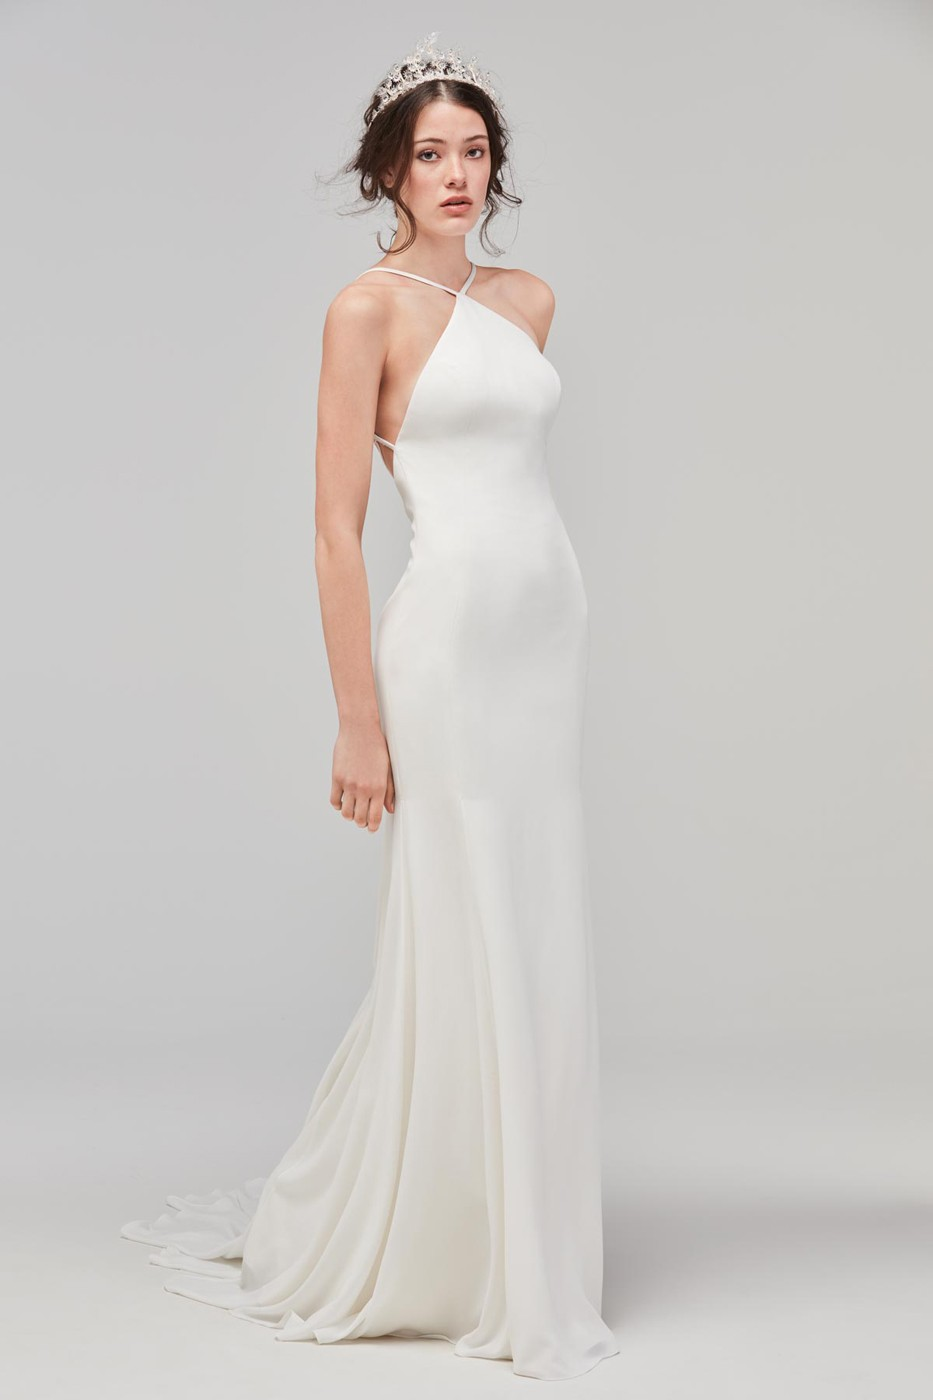 Willowby 59310 Knox High Neck Wedding Dress Tap To Expand: High Neck Wedding Dress At Websimilar.org